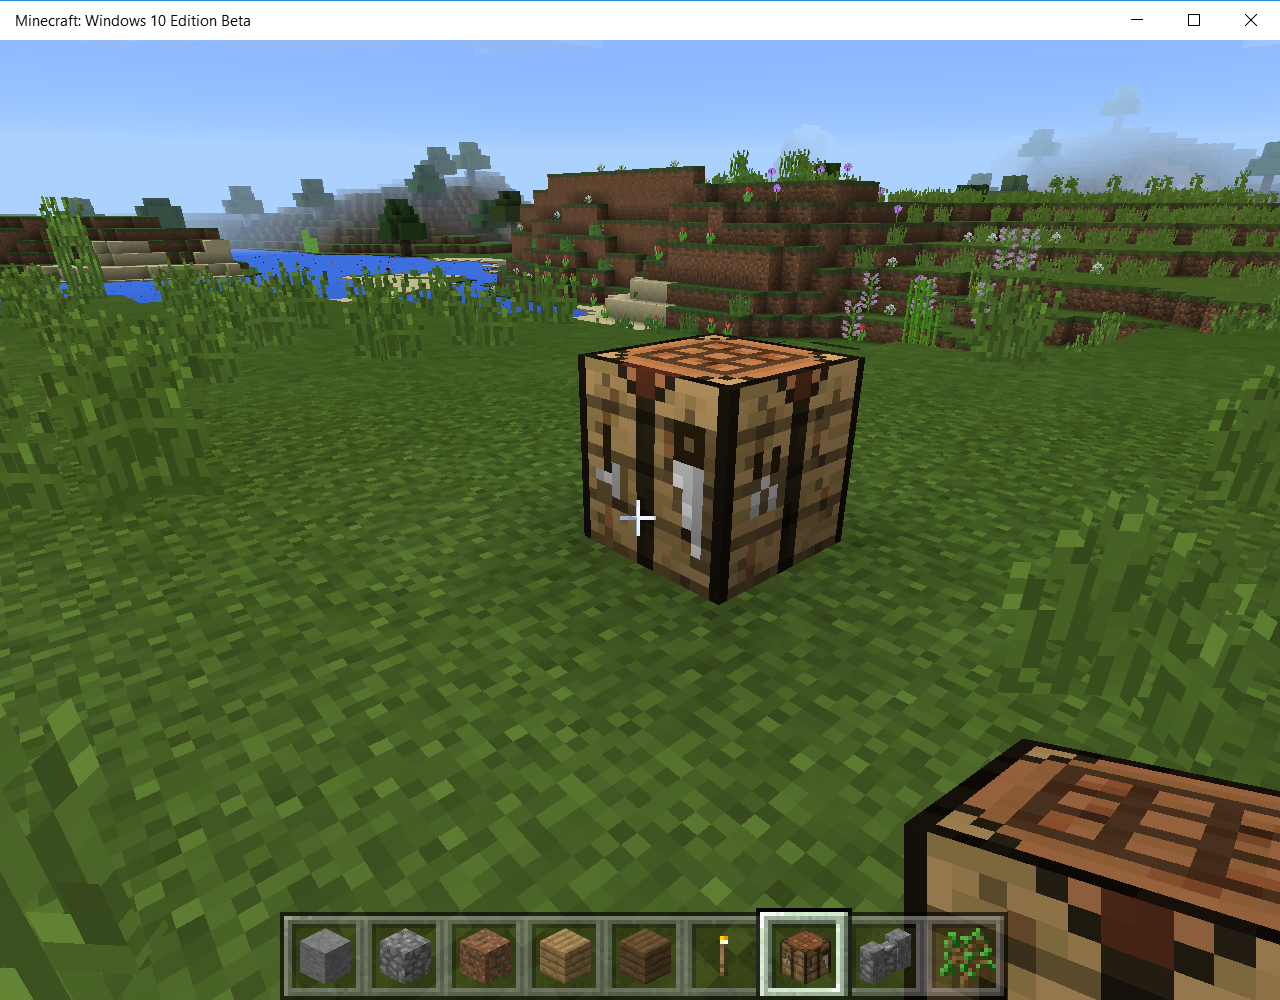 minecraft windows 10 edition how to join servers